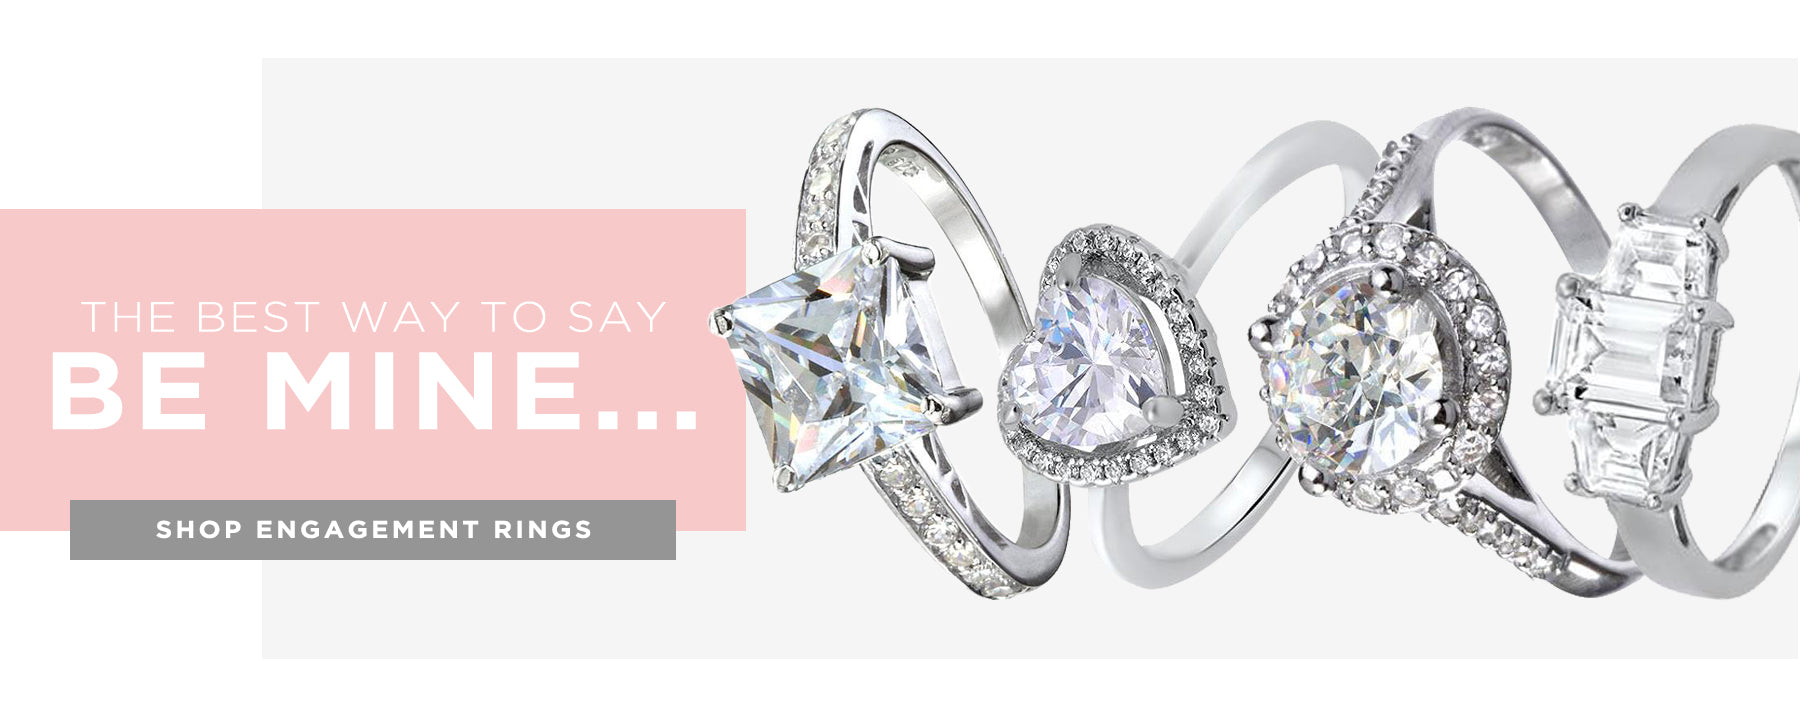 the best way to say be mine...shop engagement rings